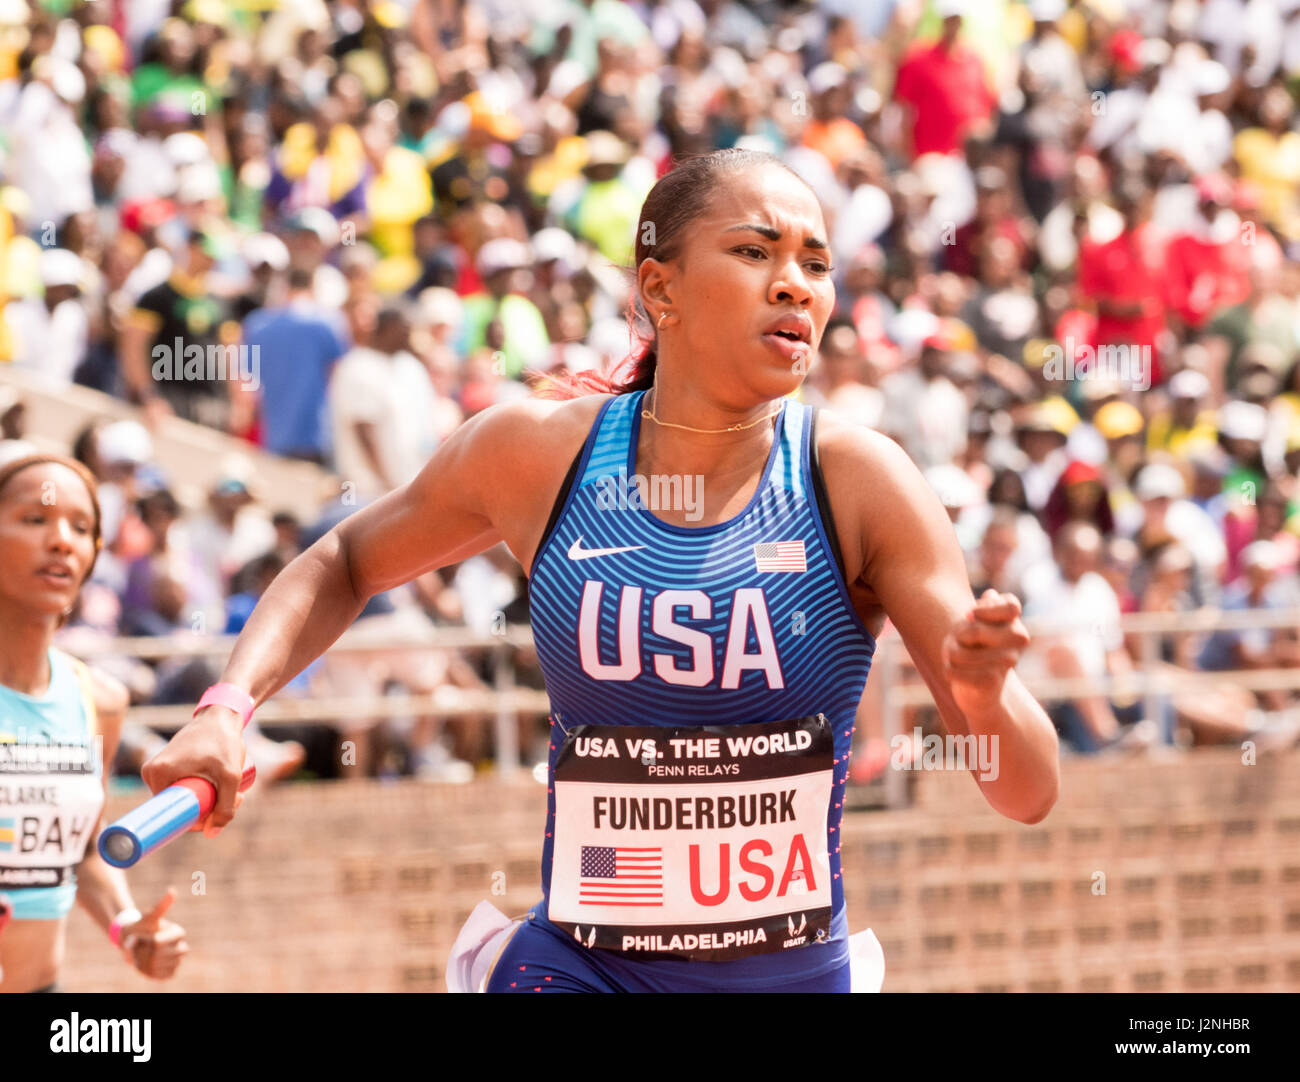 Philadelphia, Pennsylvania, USA. 29th Apr, 2017. KALA FUNDERBURK, of Team USA competing in the USA vs the World - Stock Image